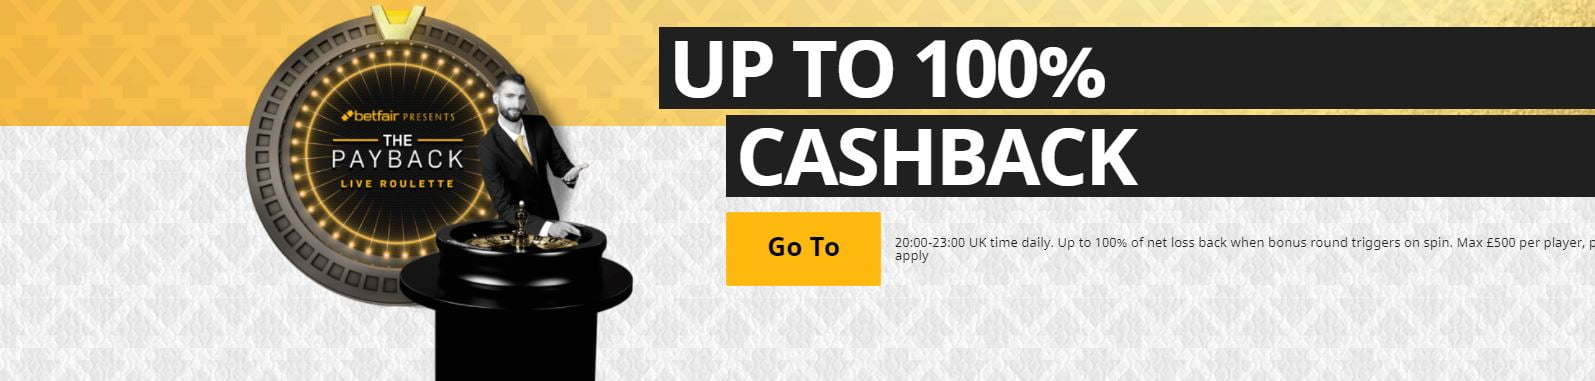 How to register with Betfair